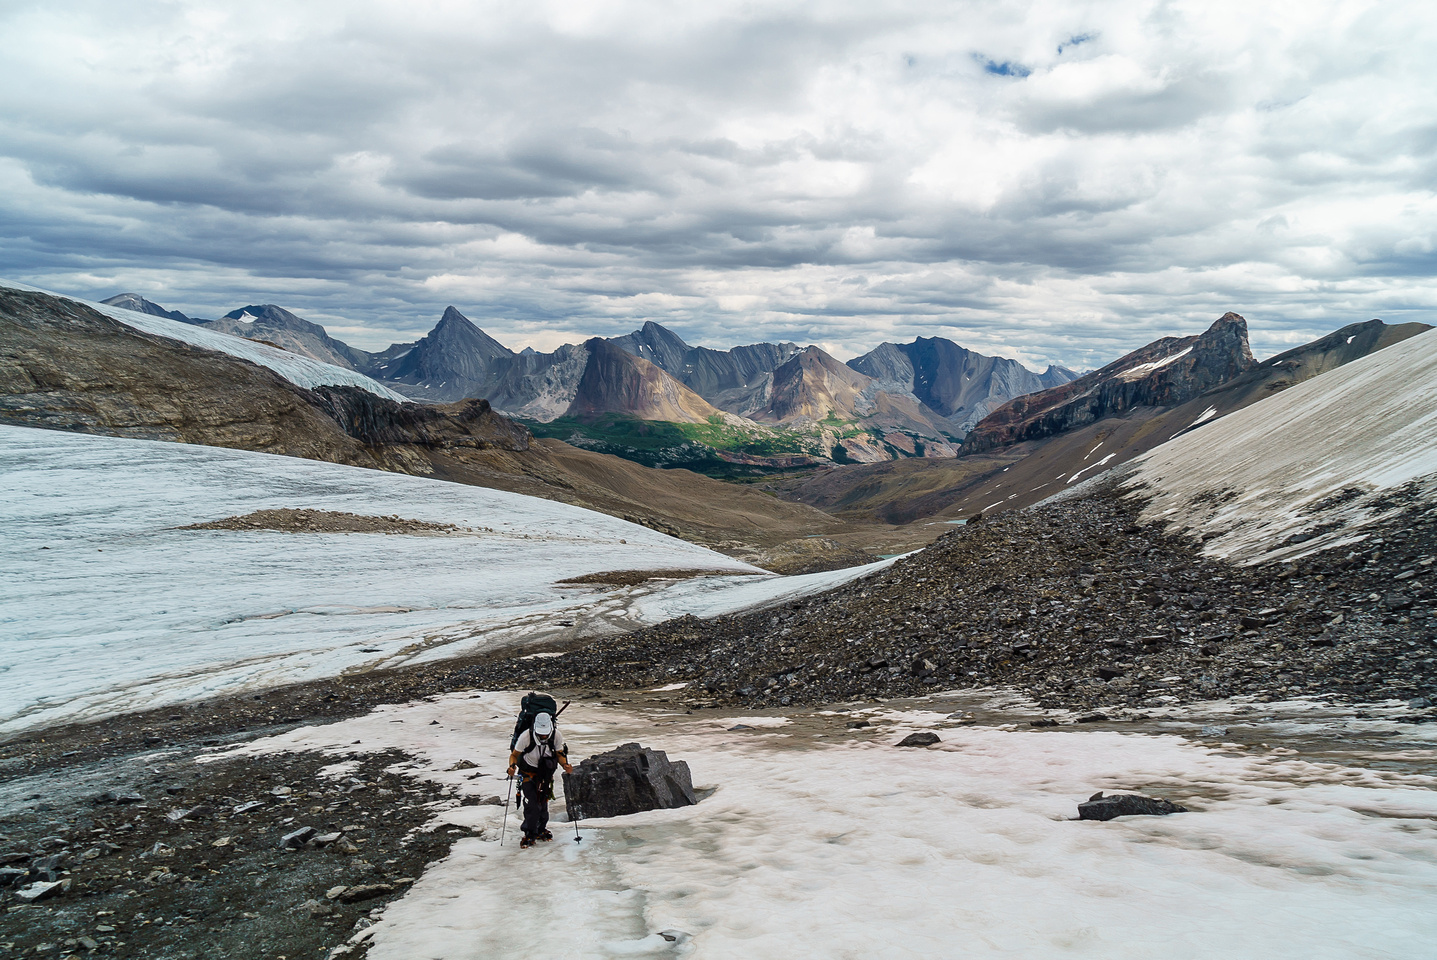 Finally off the glacier, climbing up a snow patch to the moraine above the rocky bivy coral.